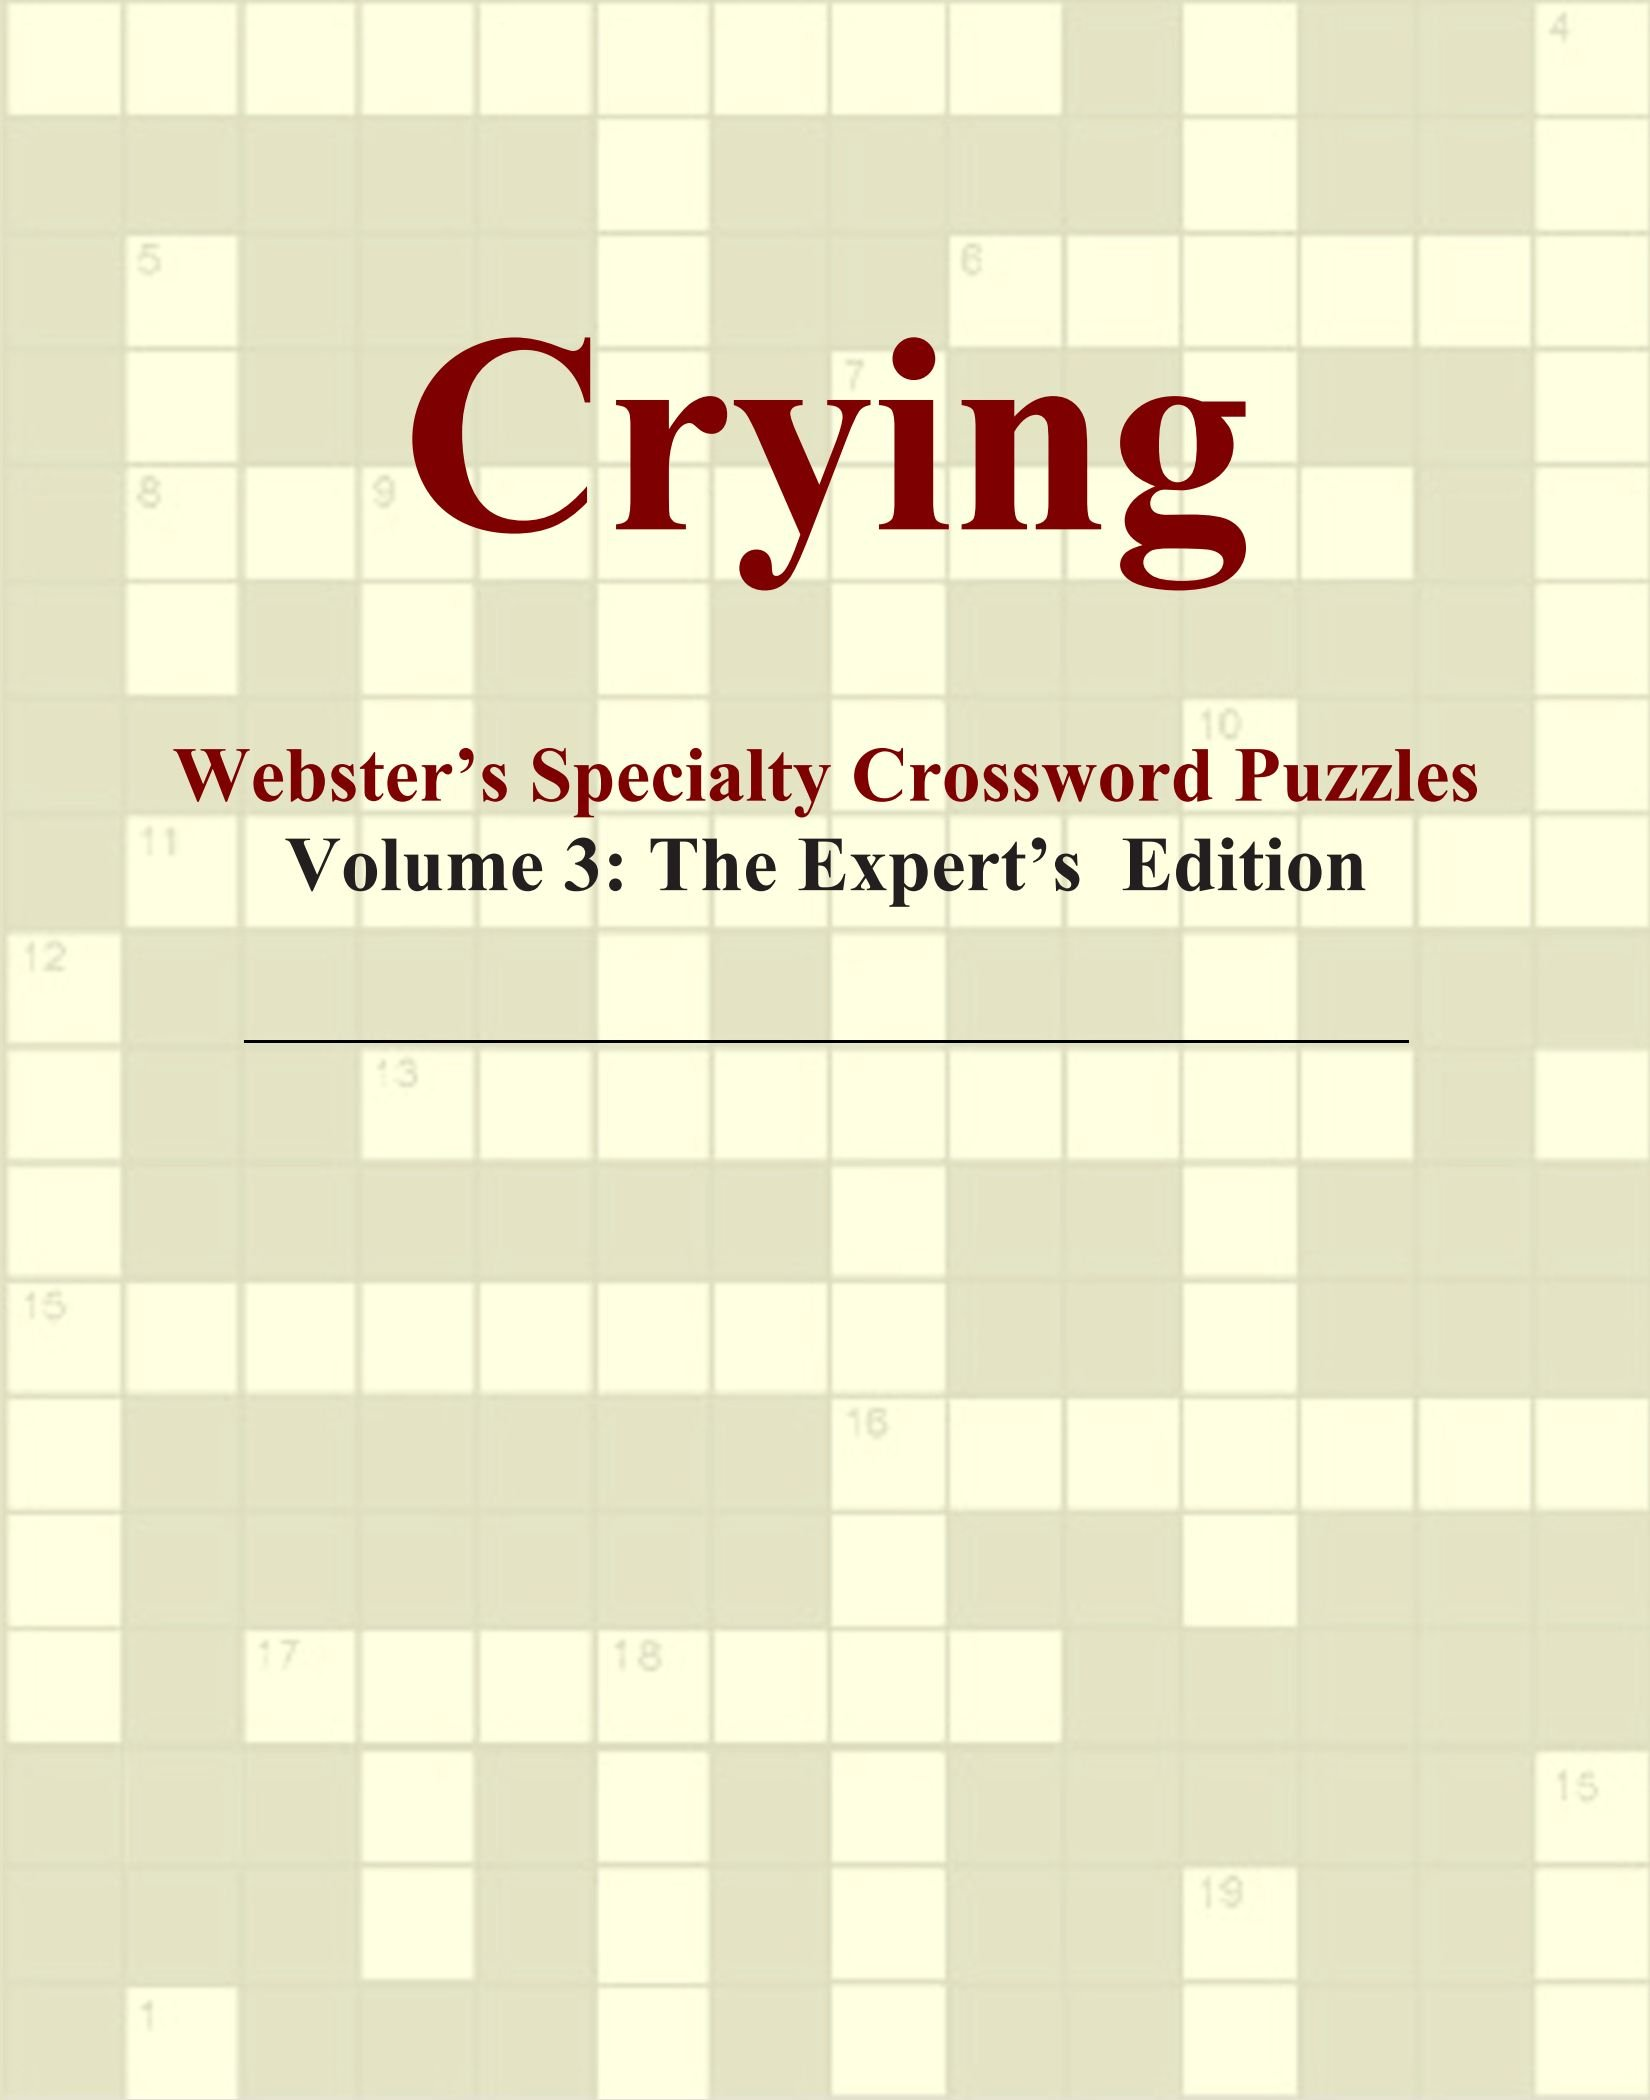 Crying - Webster's Specialty Crossword Puzzles, Volume 3: The Expert's Edition PDF